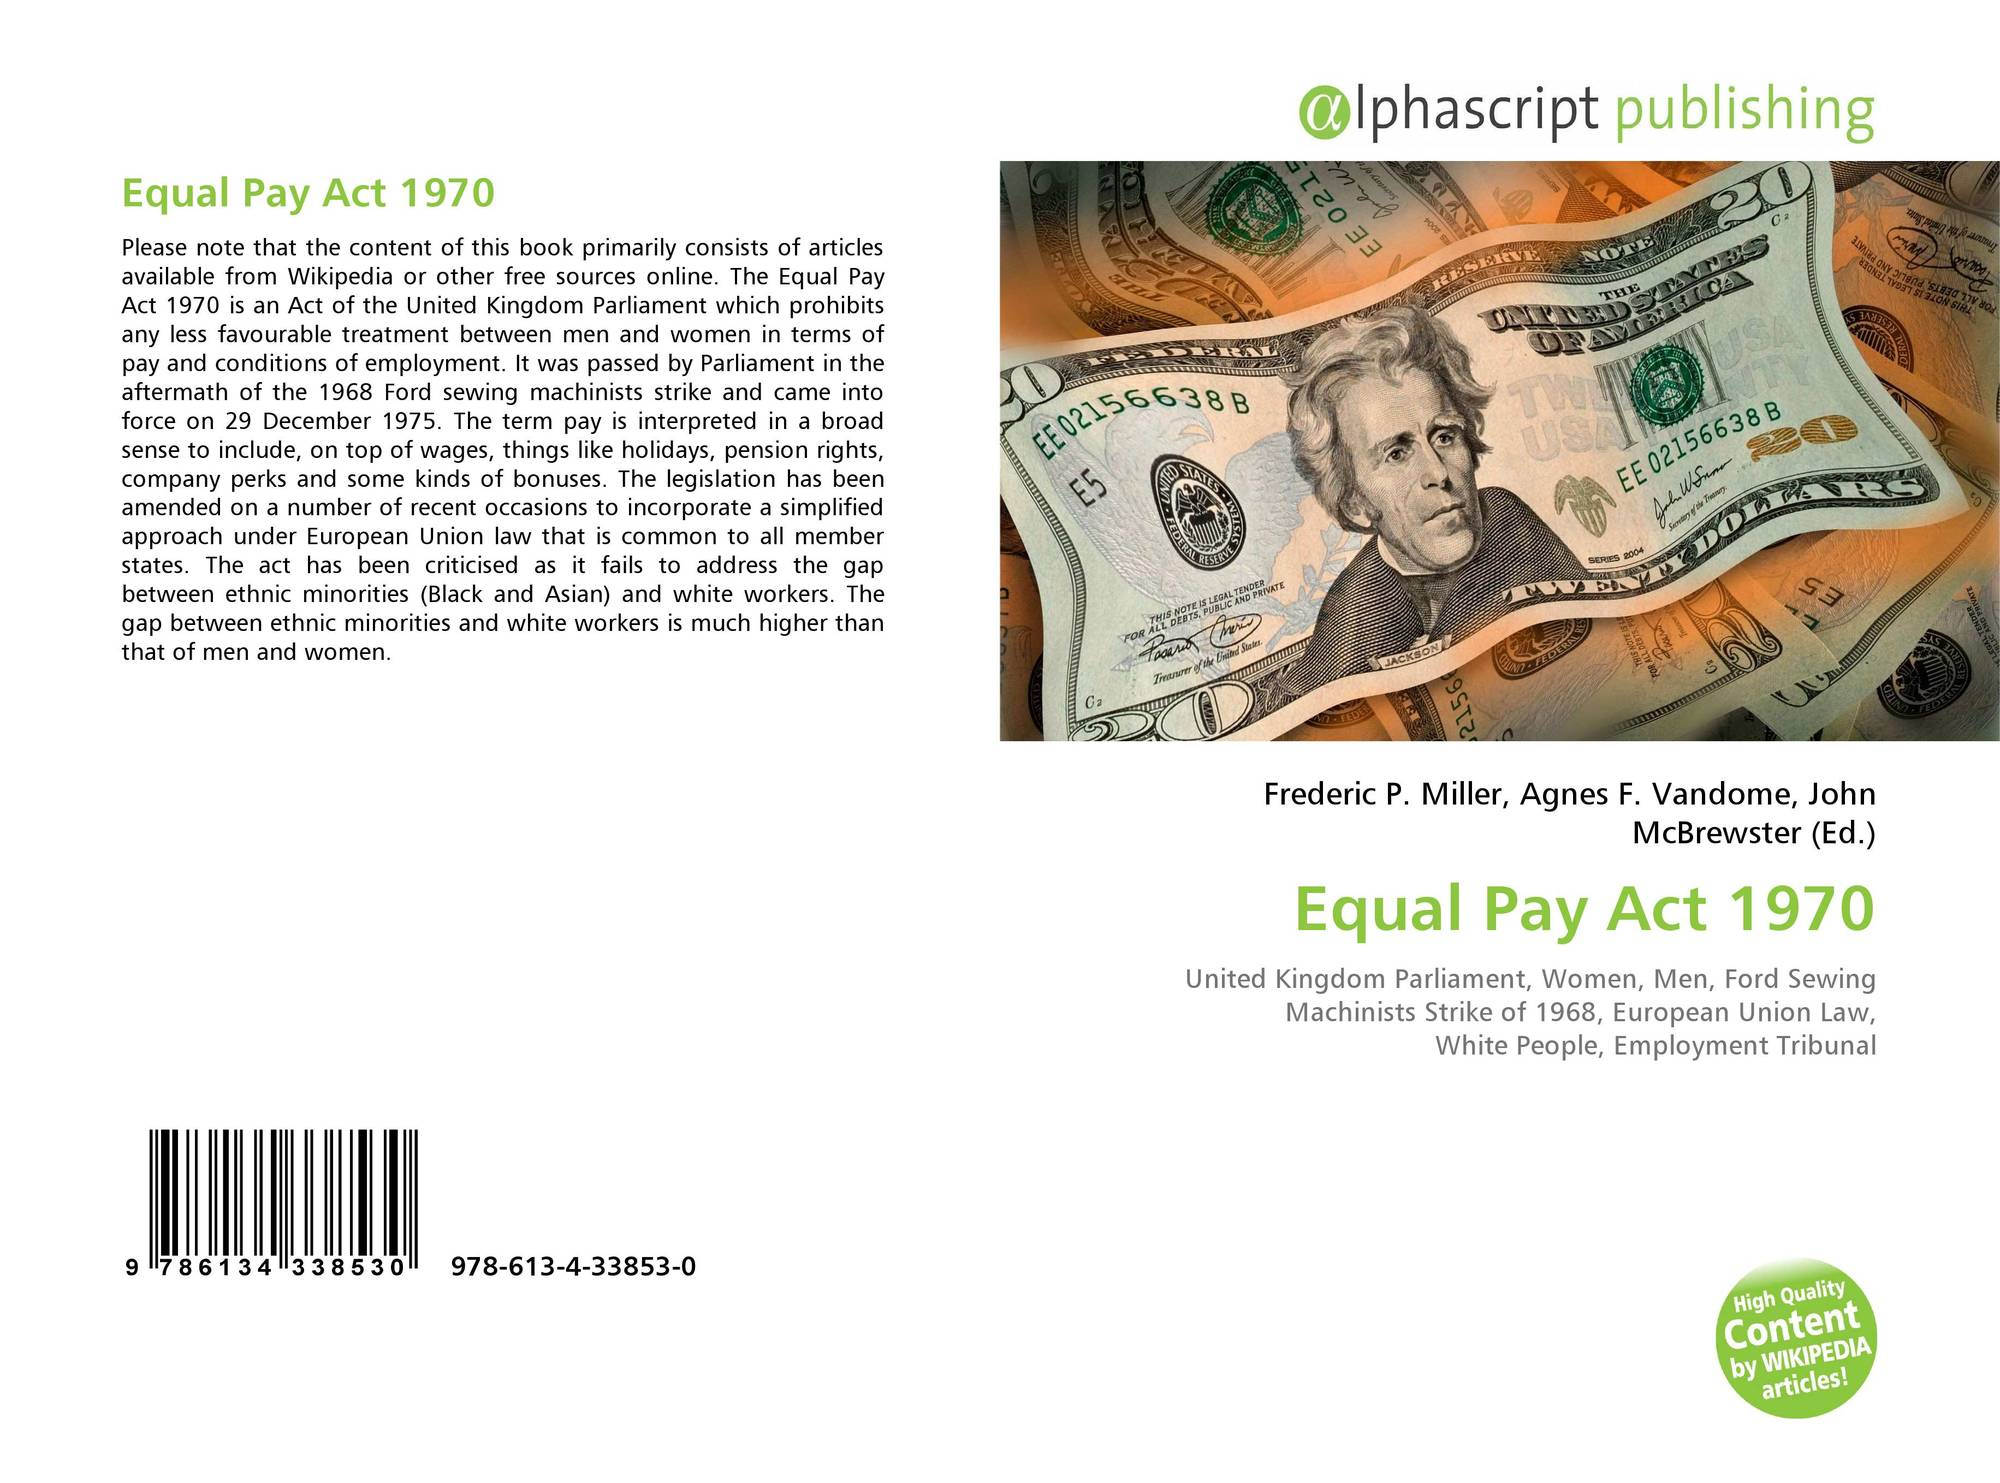 the equal pay act 1970 essay The act is intended to simplify the law by bringing together existing anti- discrimination legislations, such as, the equal pay act (1970), the sex  discrimination act.